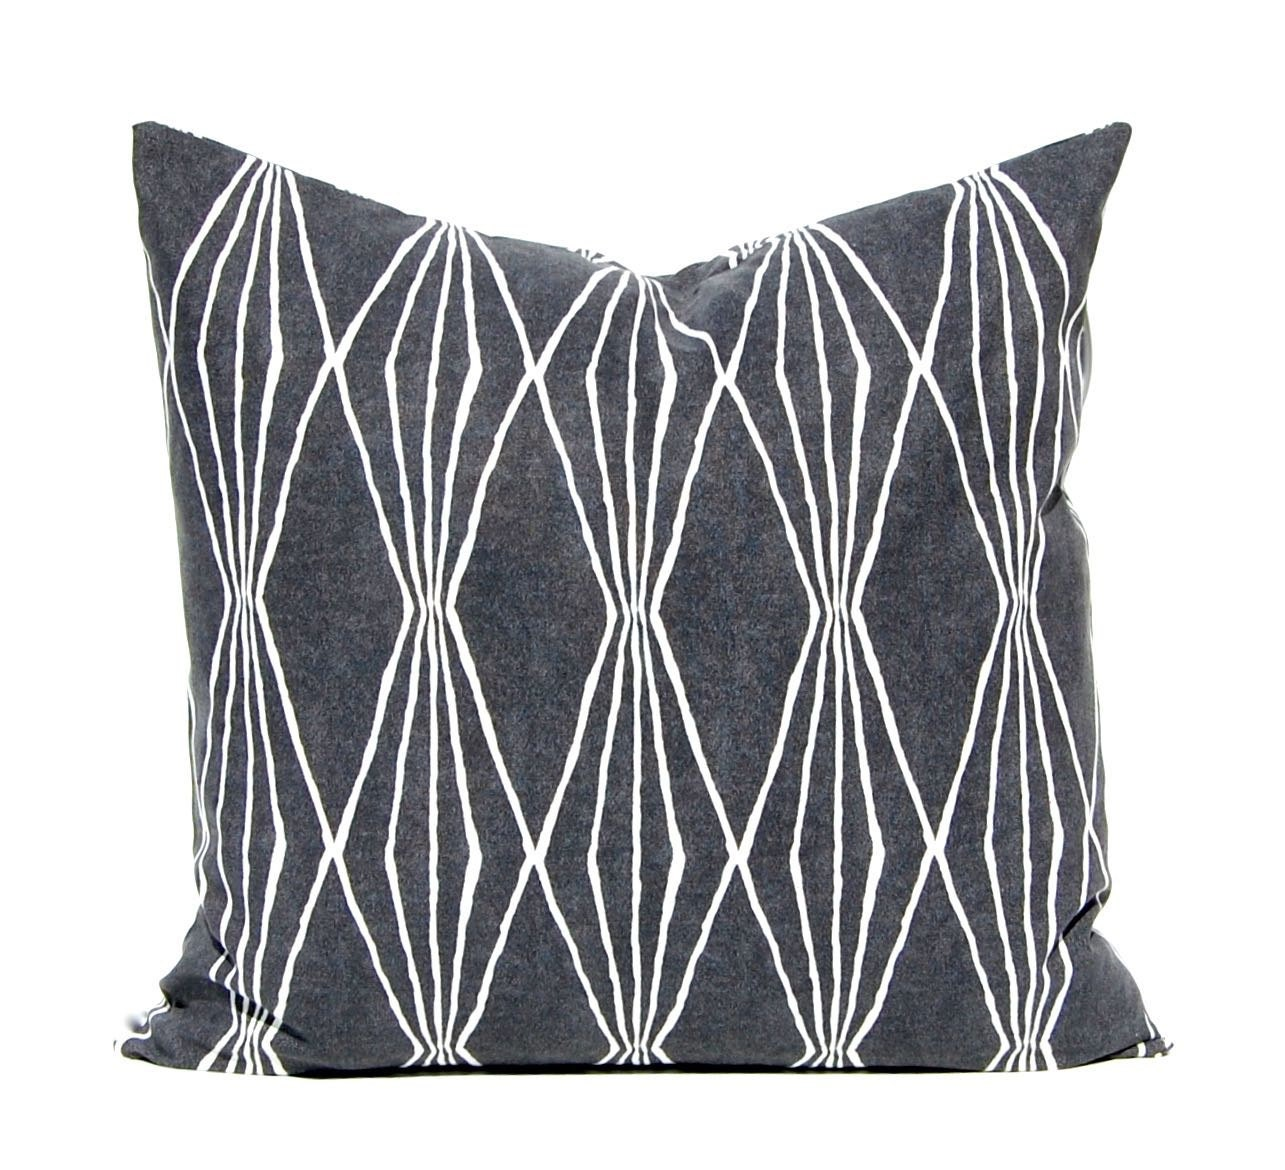 Throw Pillow Cover Charcoal Gray Pillow Cover Sofa Pillow